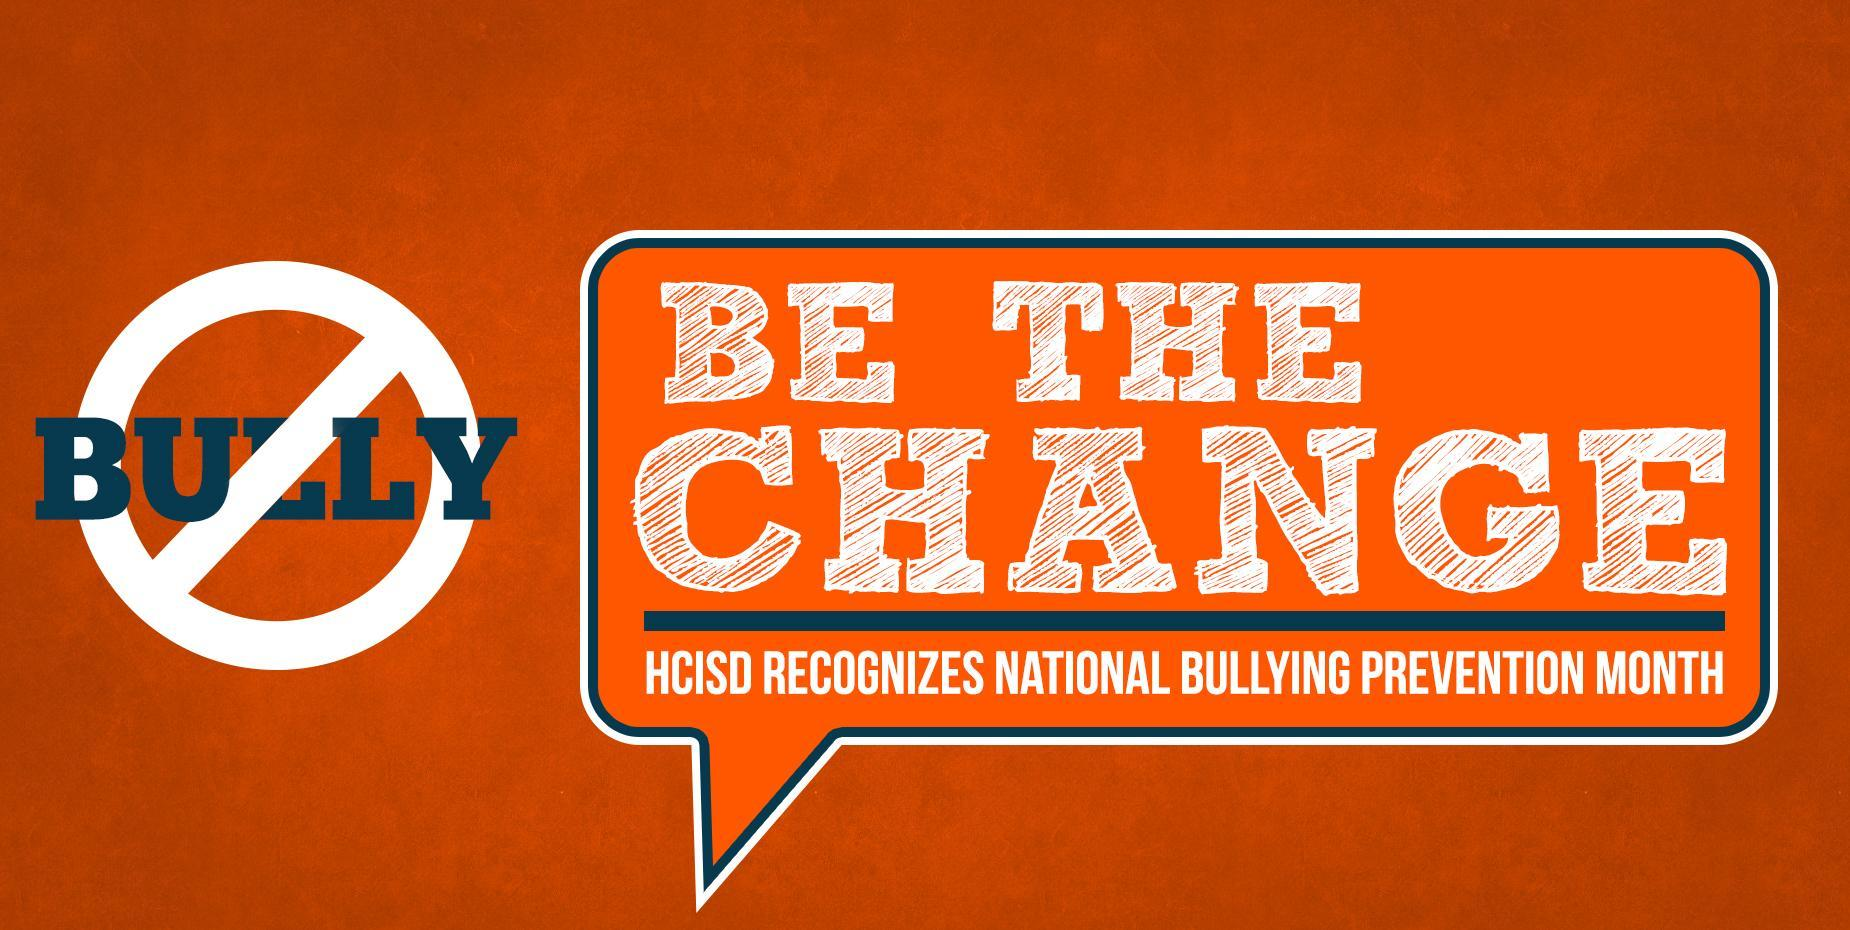 HCISD Recognizes National Bullying Prevention Month